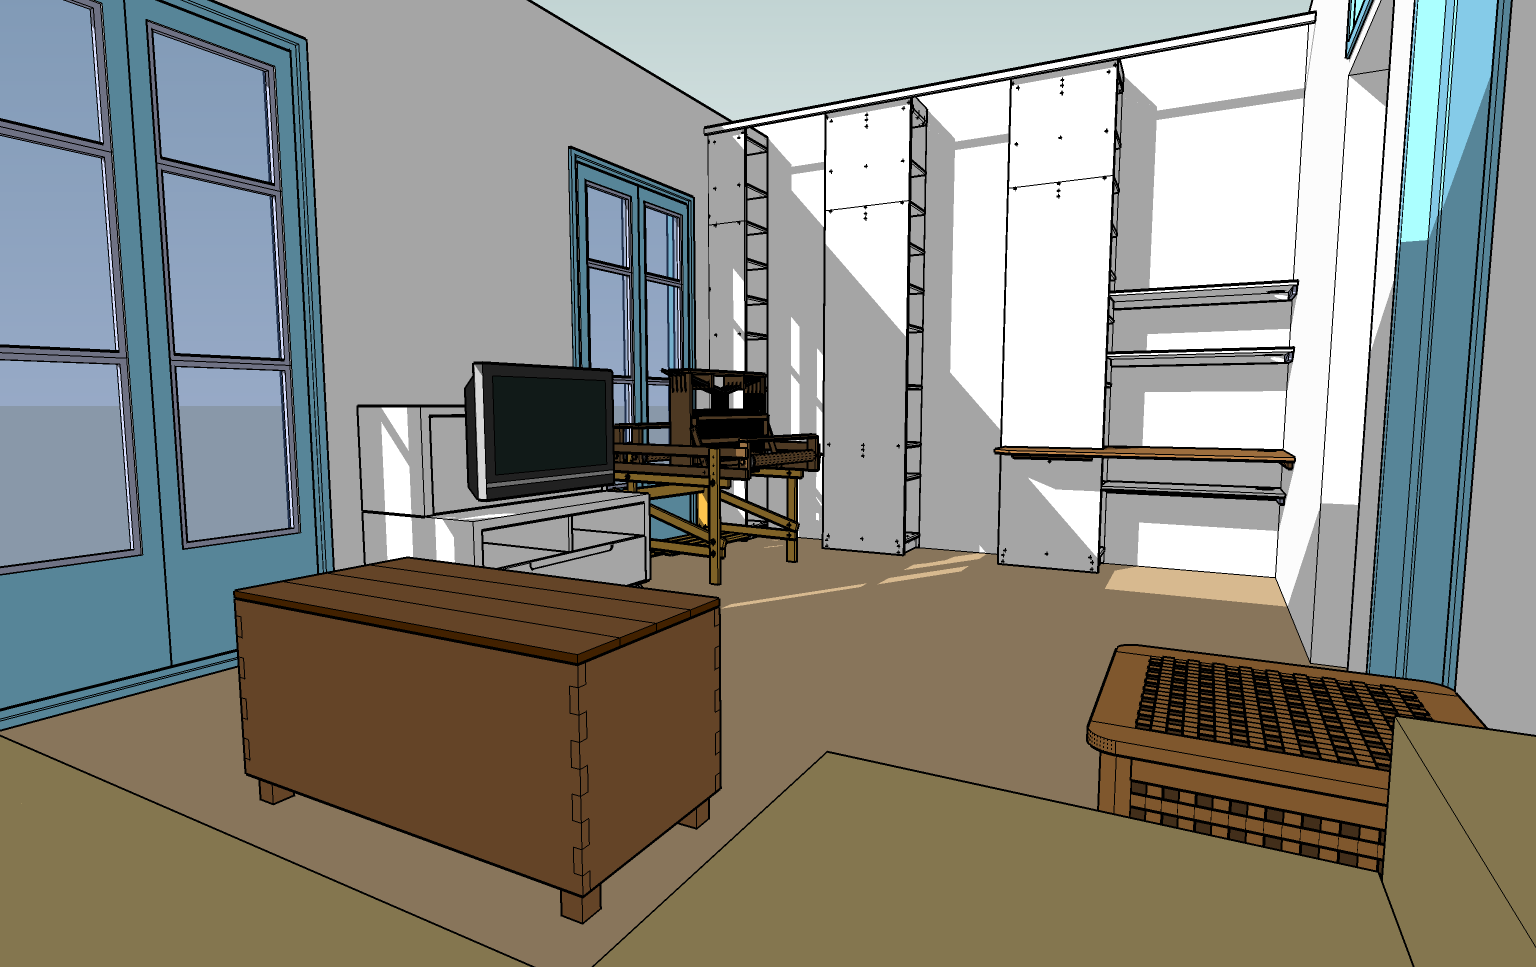 Using Google Sketchup To Test Room Layouts Catmaceys Stuff Etching Circuits At Home Geekdad Our New Living